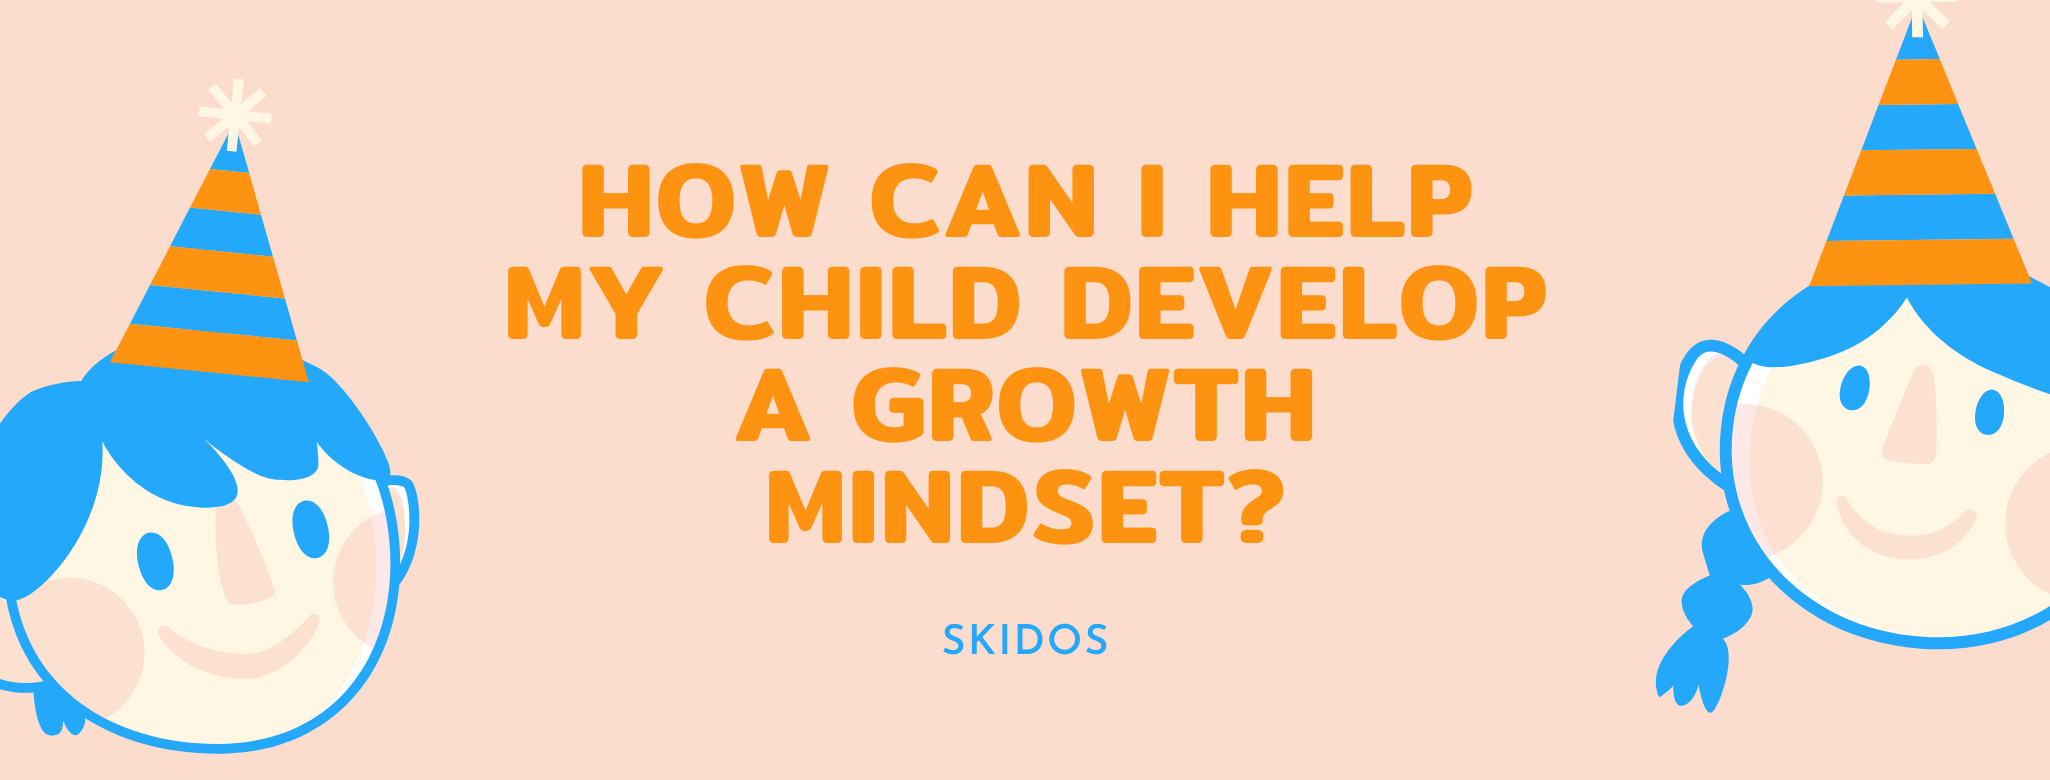 How can I help my child develop a growth mindset